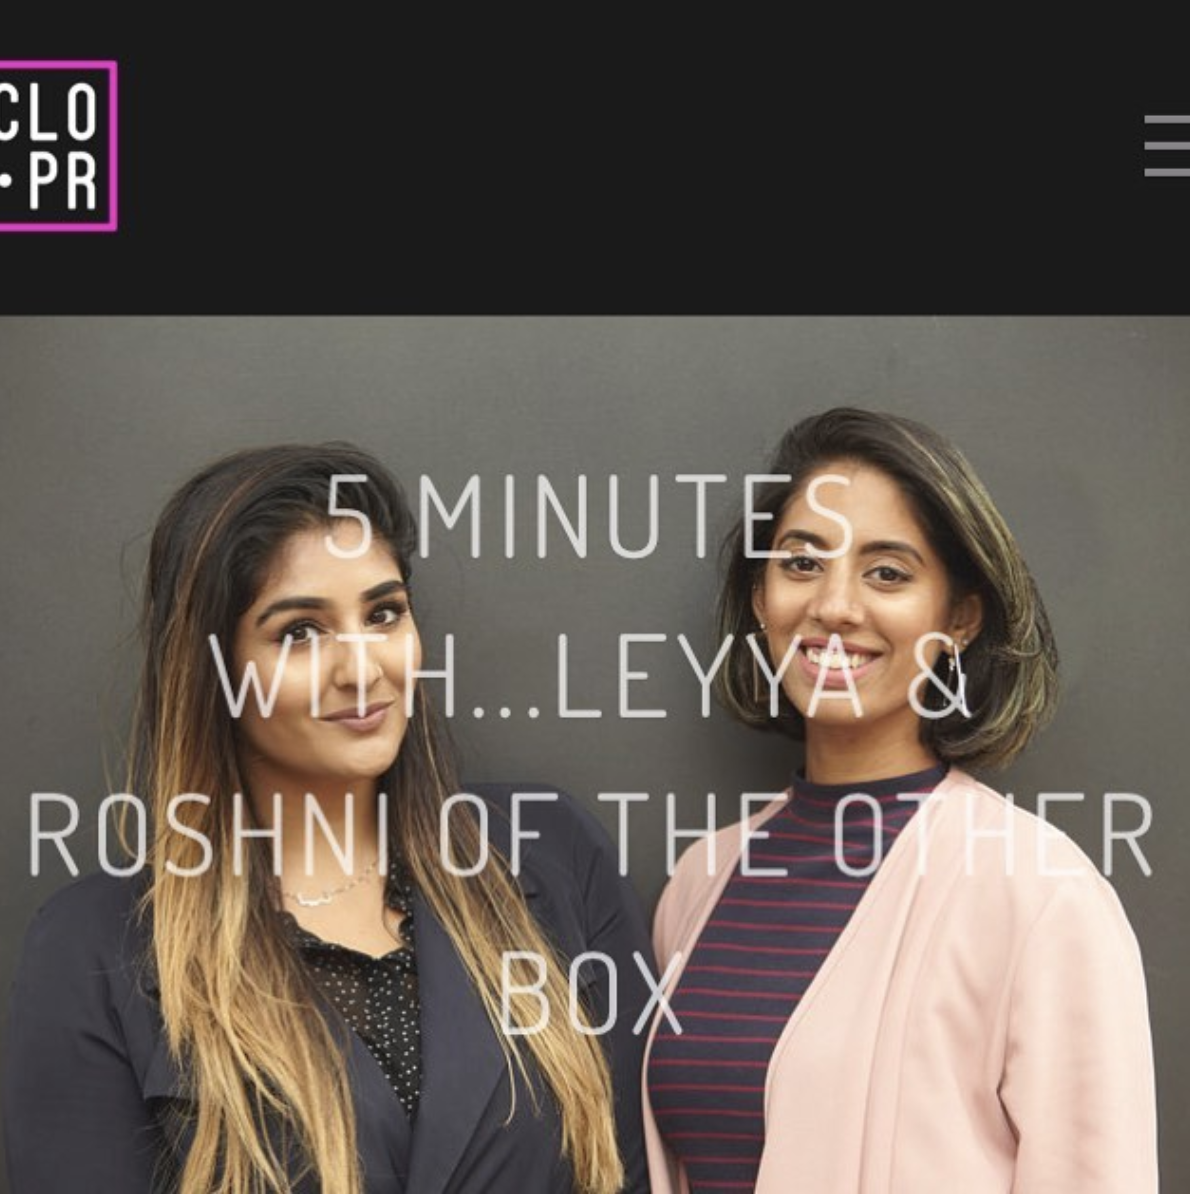 CLO PR  INTERVIEW  Part of CLO PR's mission is to support clients on the road to building sustainable cultures that truly embrace diversity - so we sat down to share with them more details of our journey since launching in 2016.